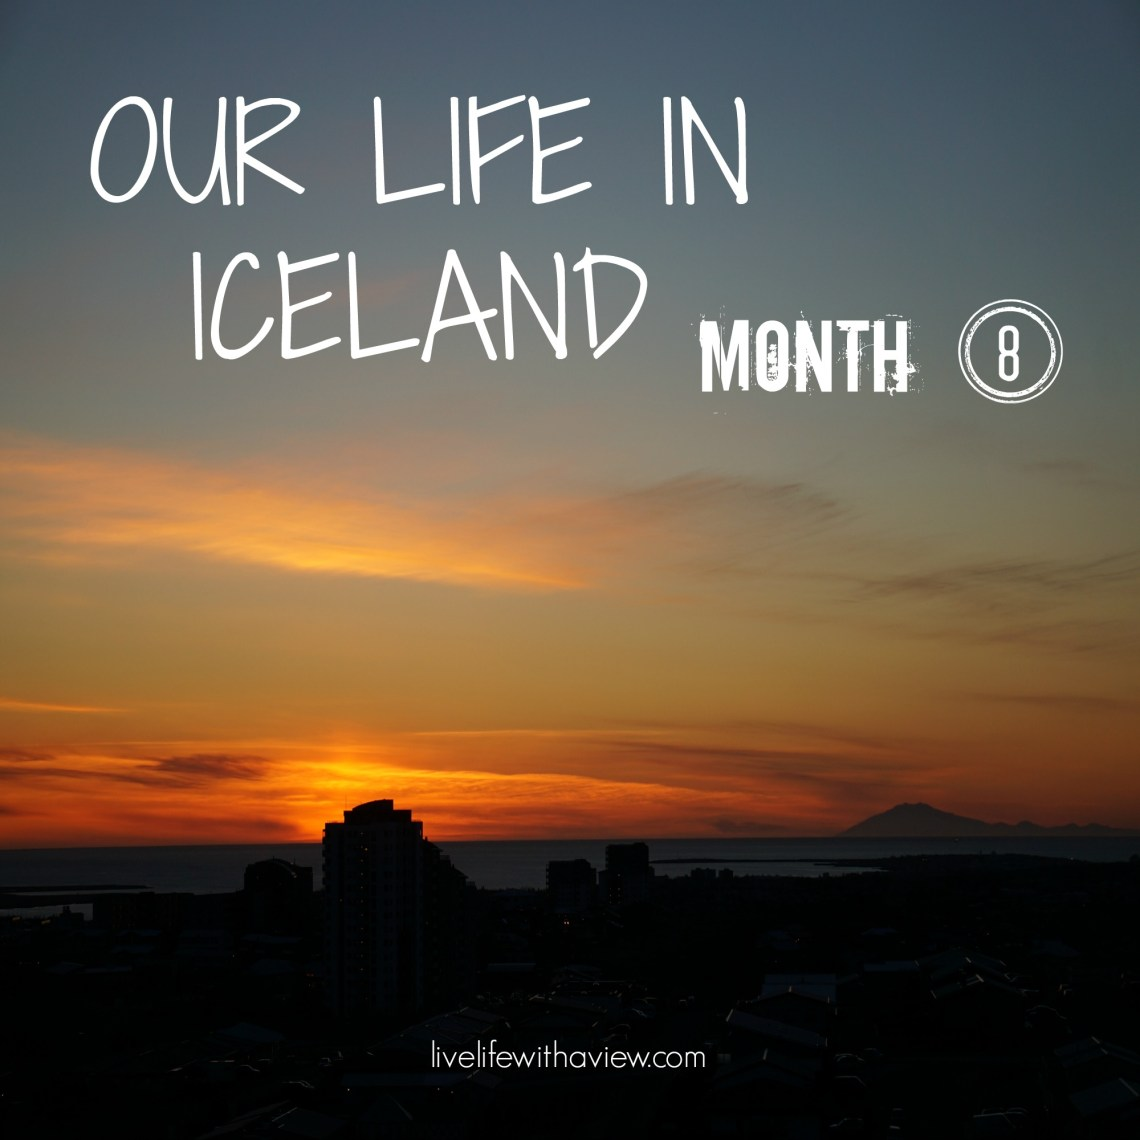 Our life in Iceland - Month 8